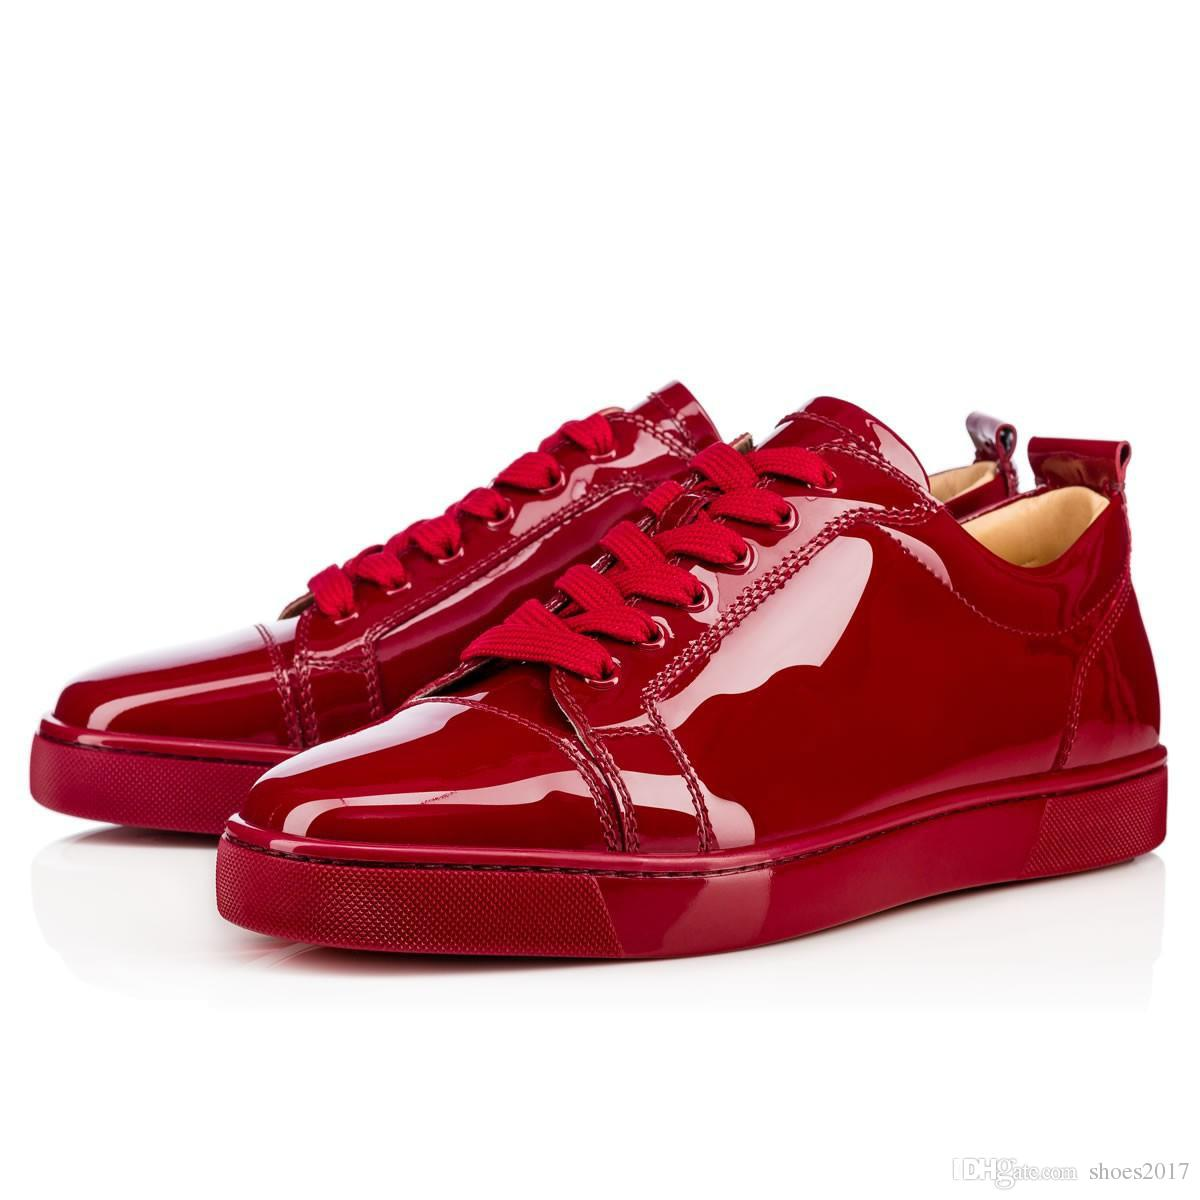 Louboutin Online Store Shoes